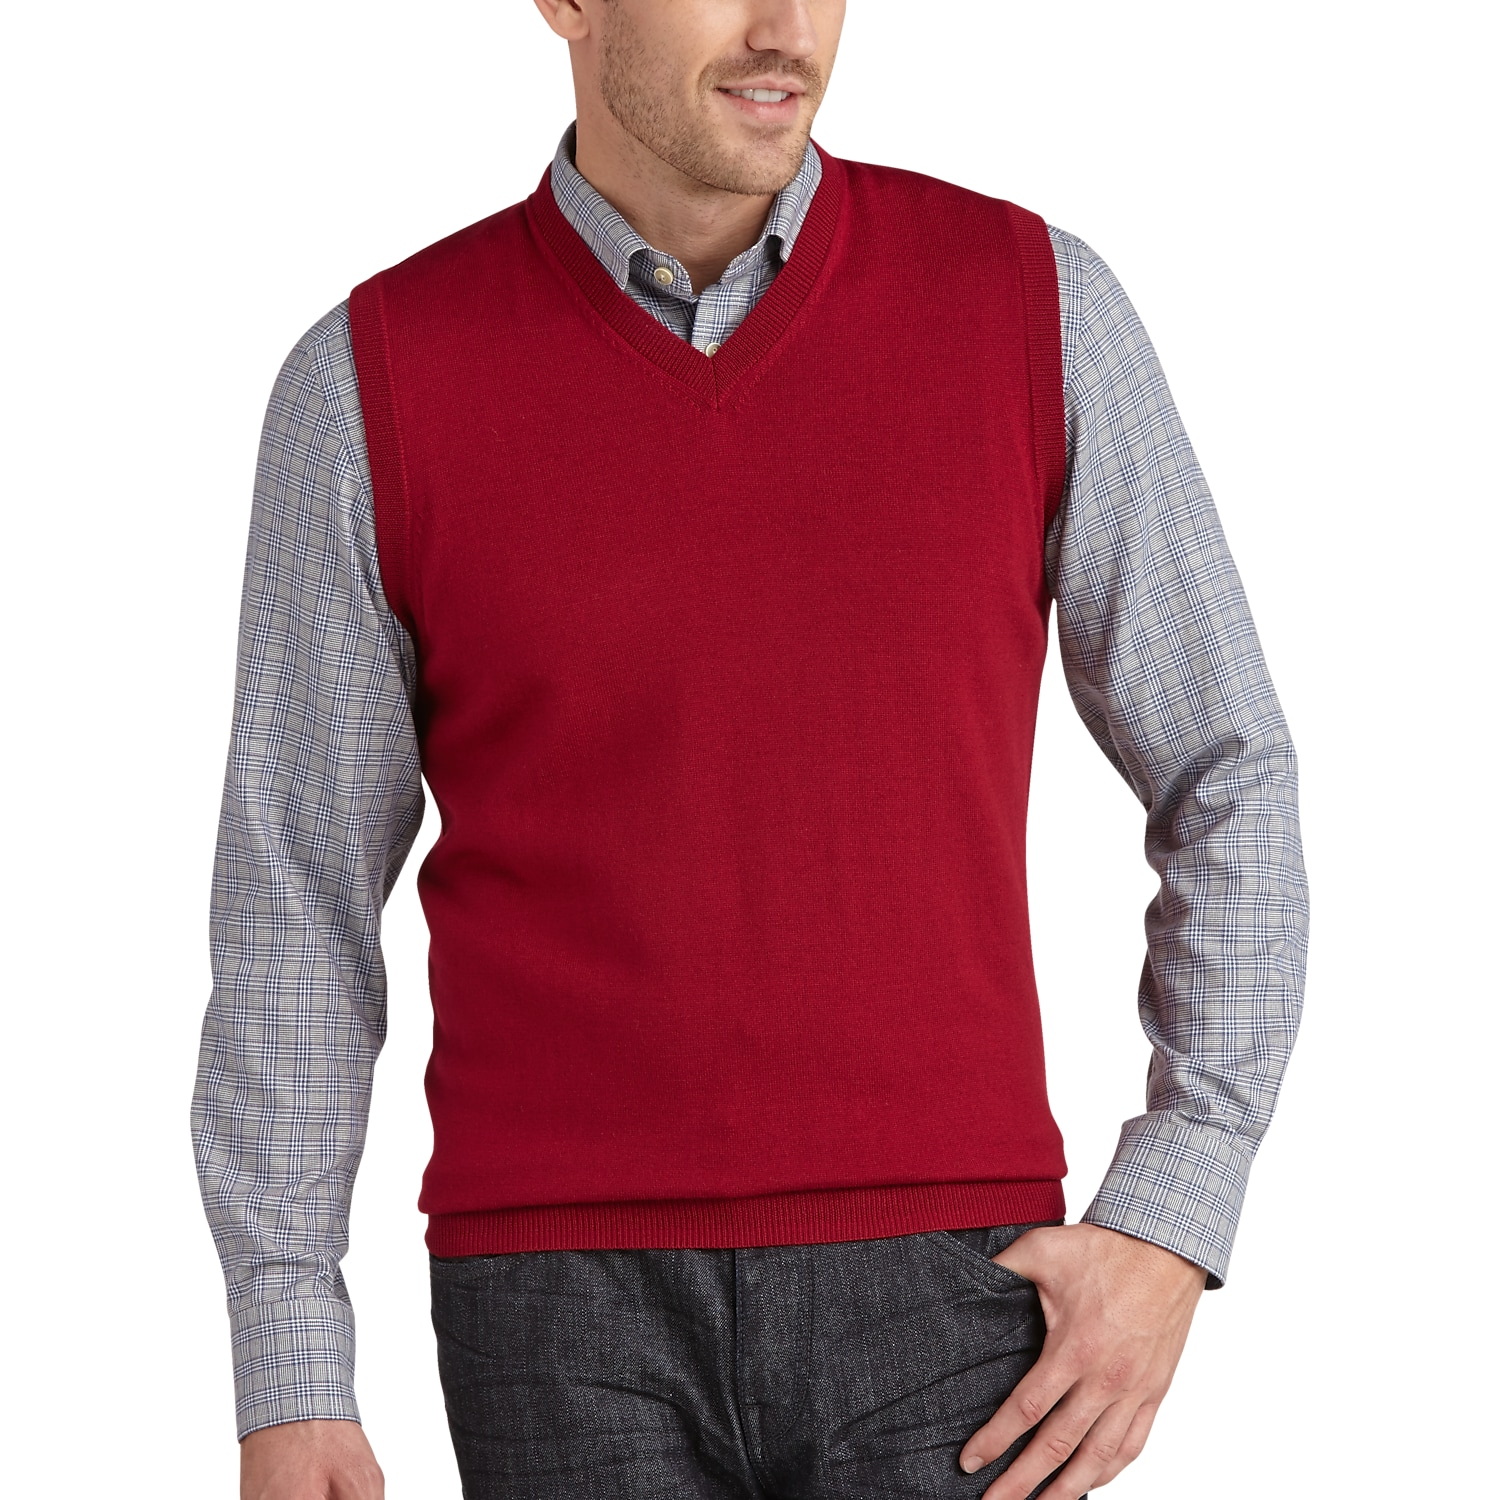 Joseph Abboud Red Merino Vest - Men's Sweater Vests | Men's Wearhouse